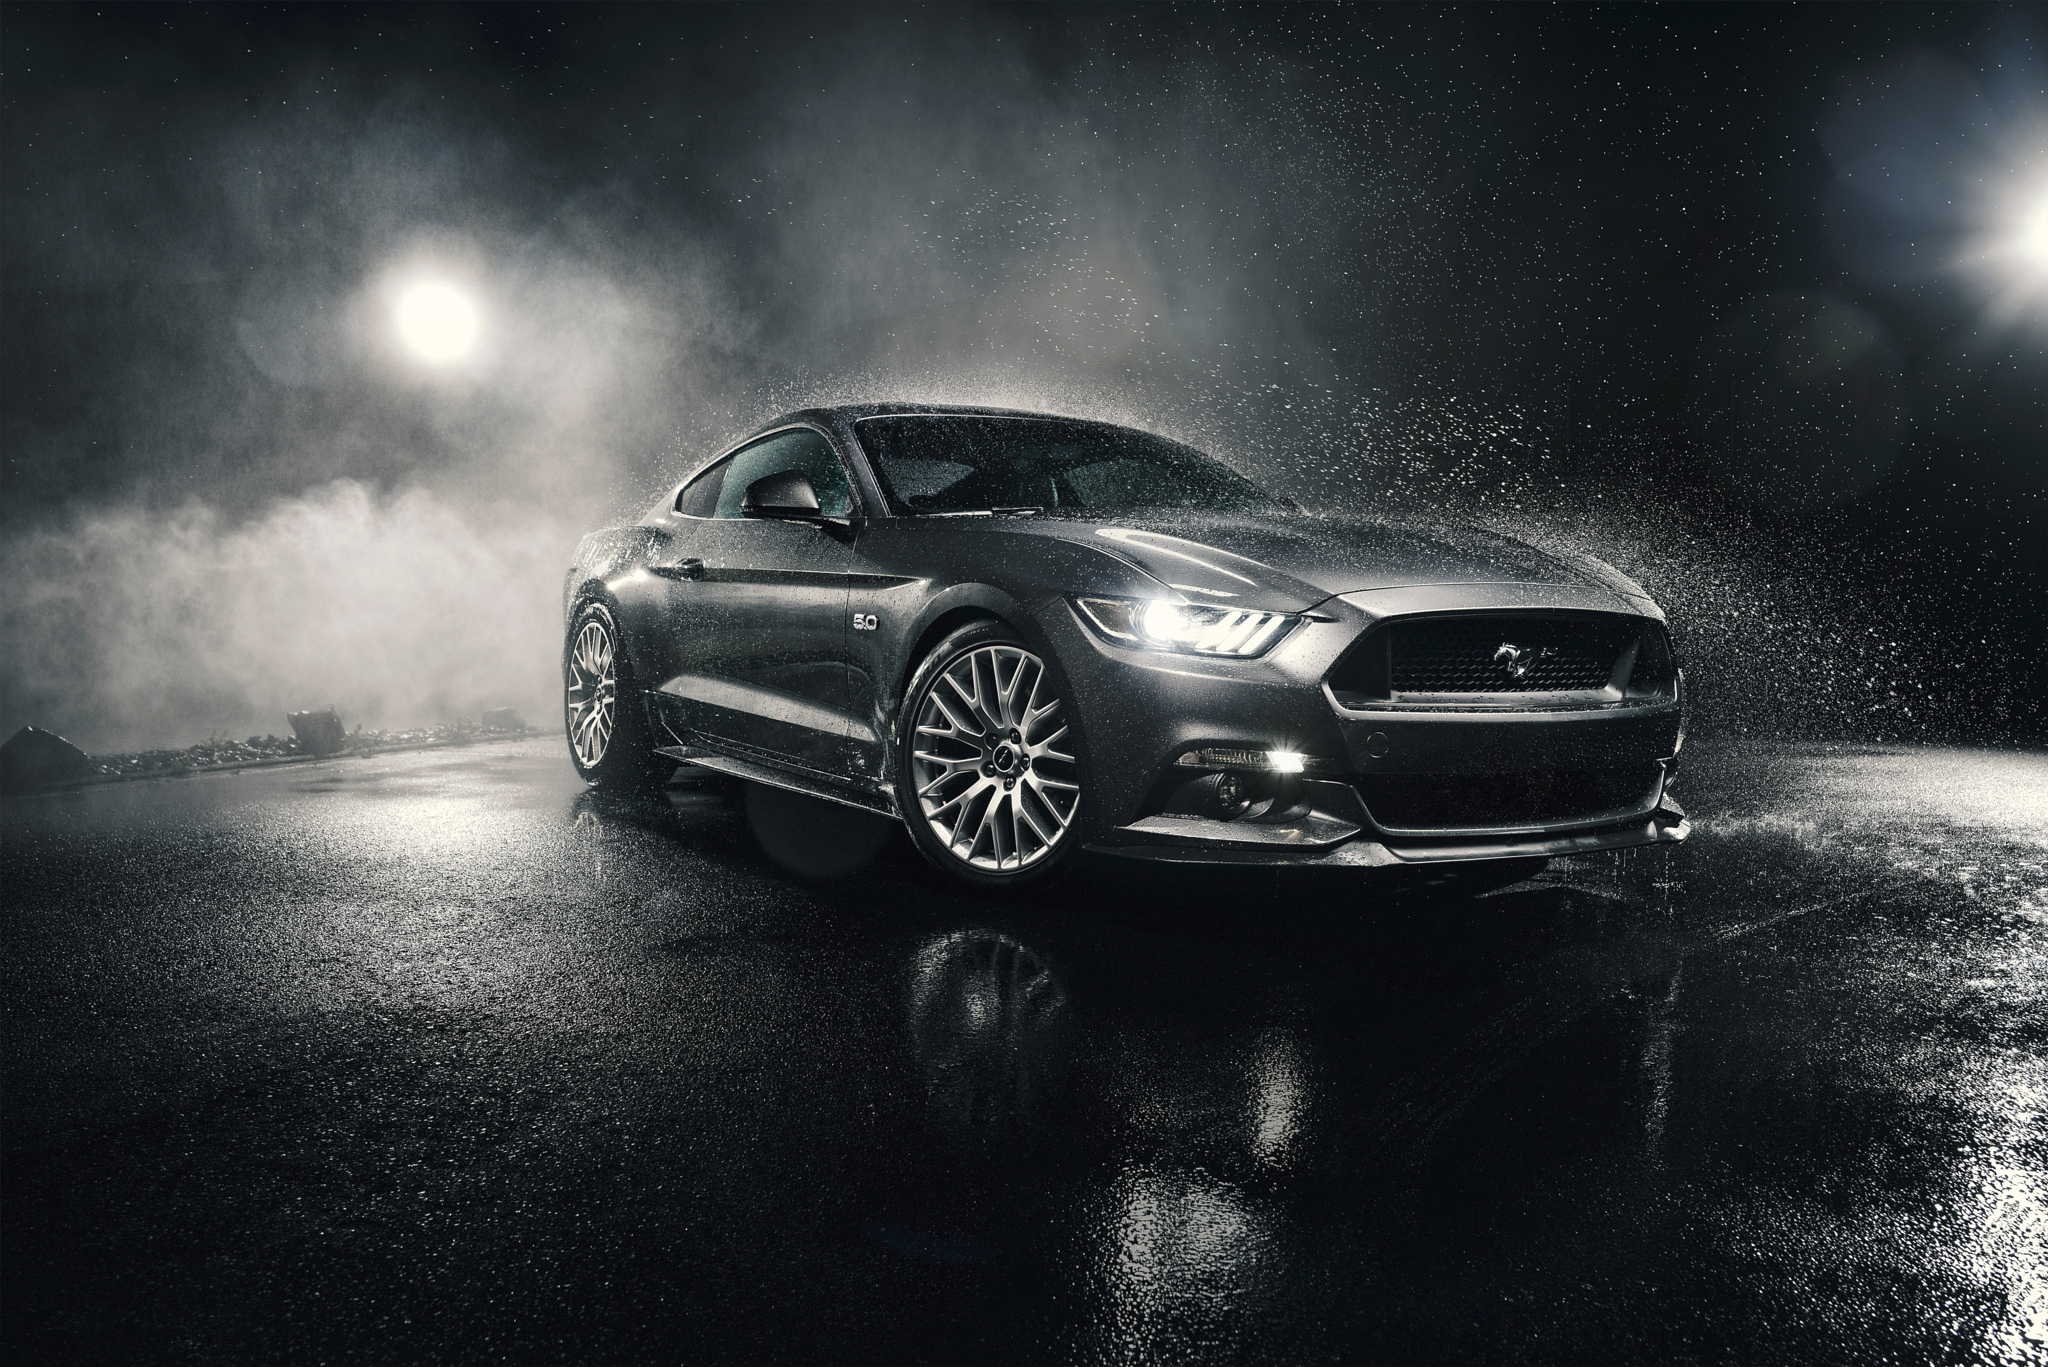 04 Mustang Gt >> Ford Mustang GT Wallpapers, Pictures, Images